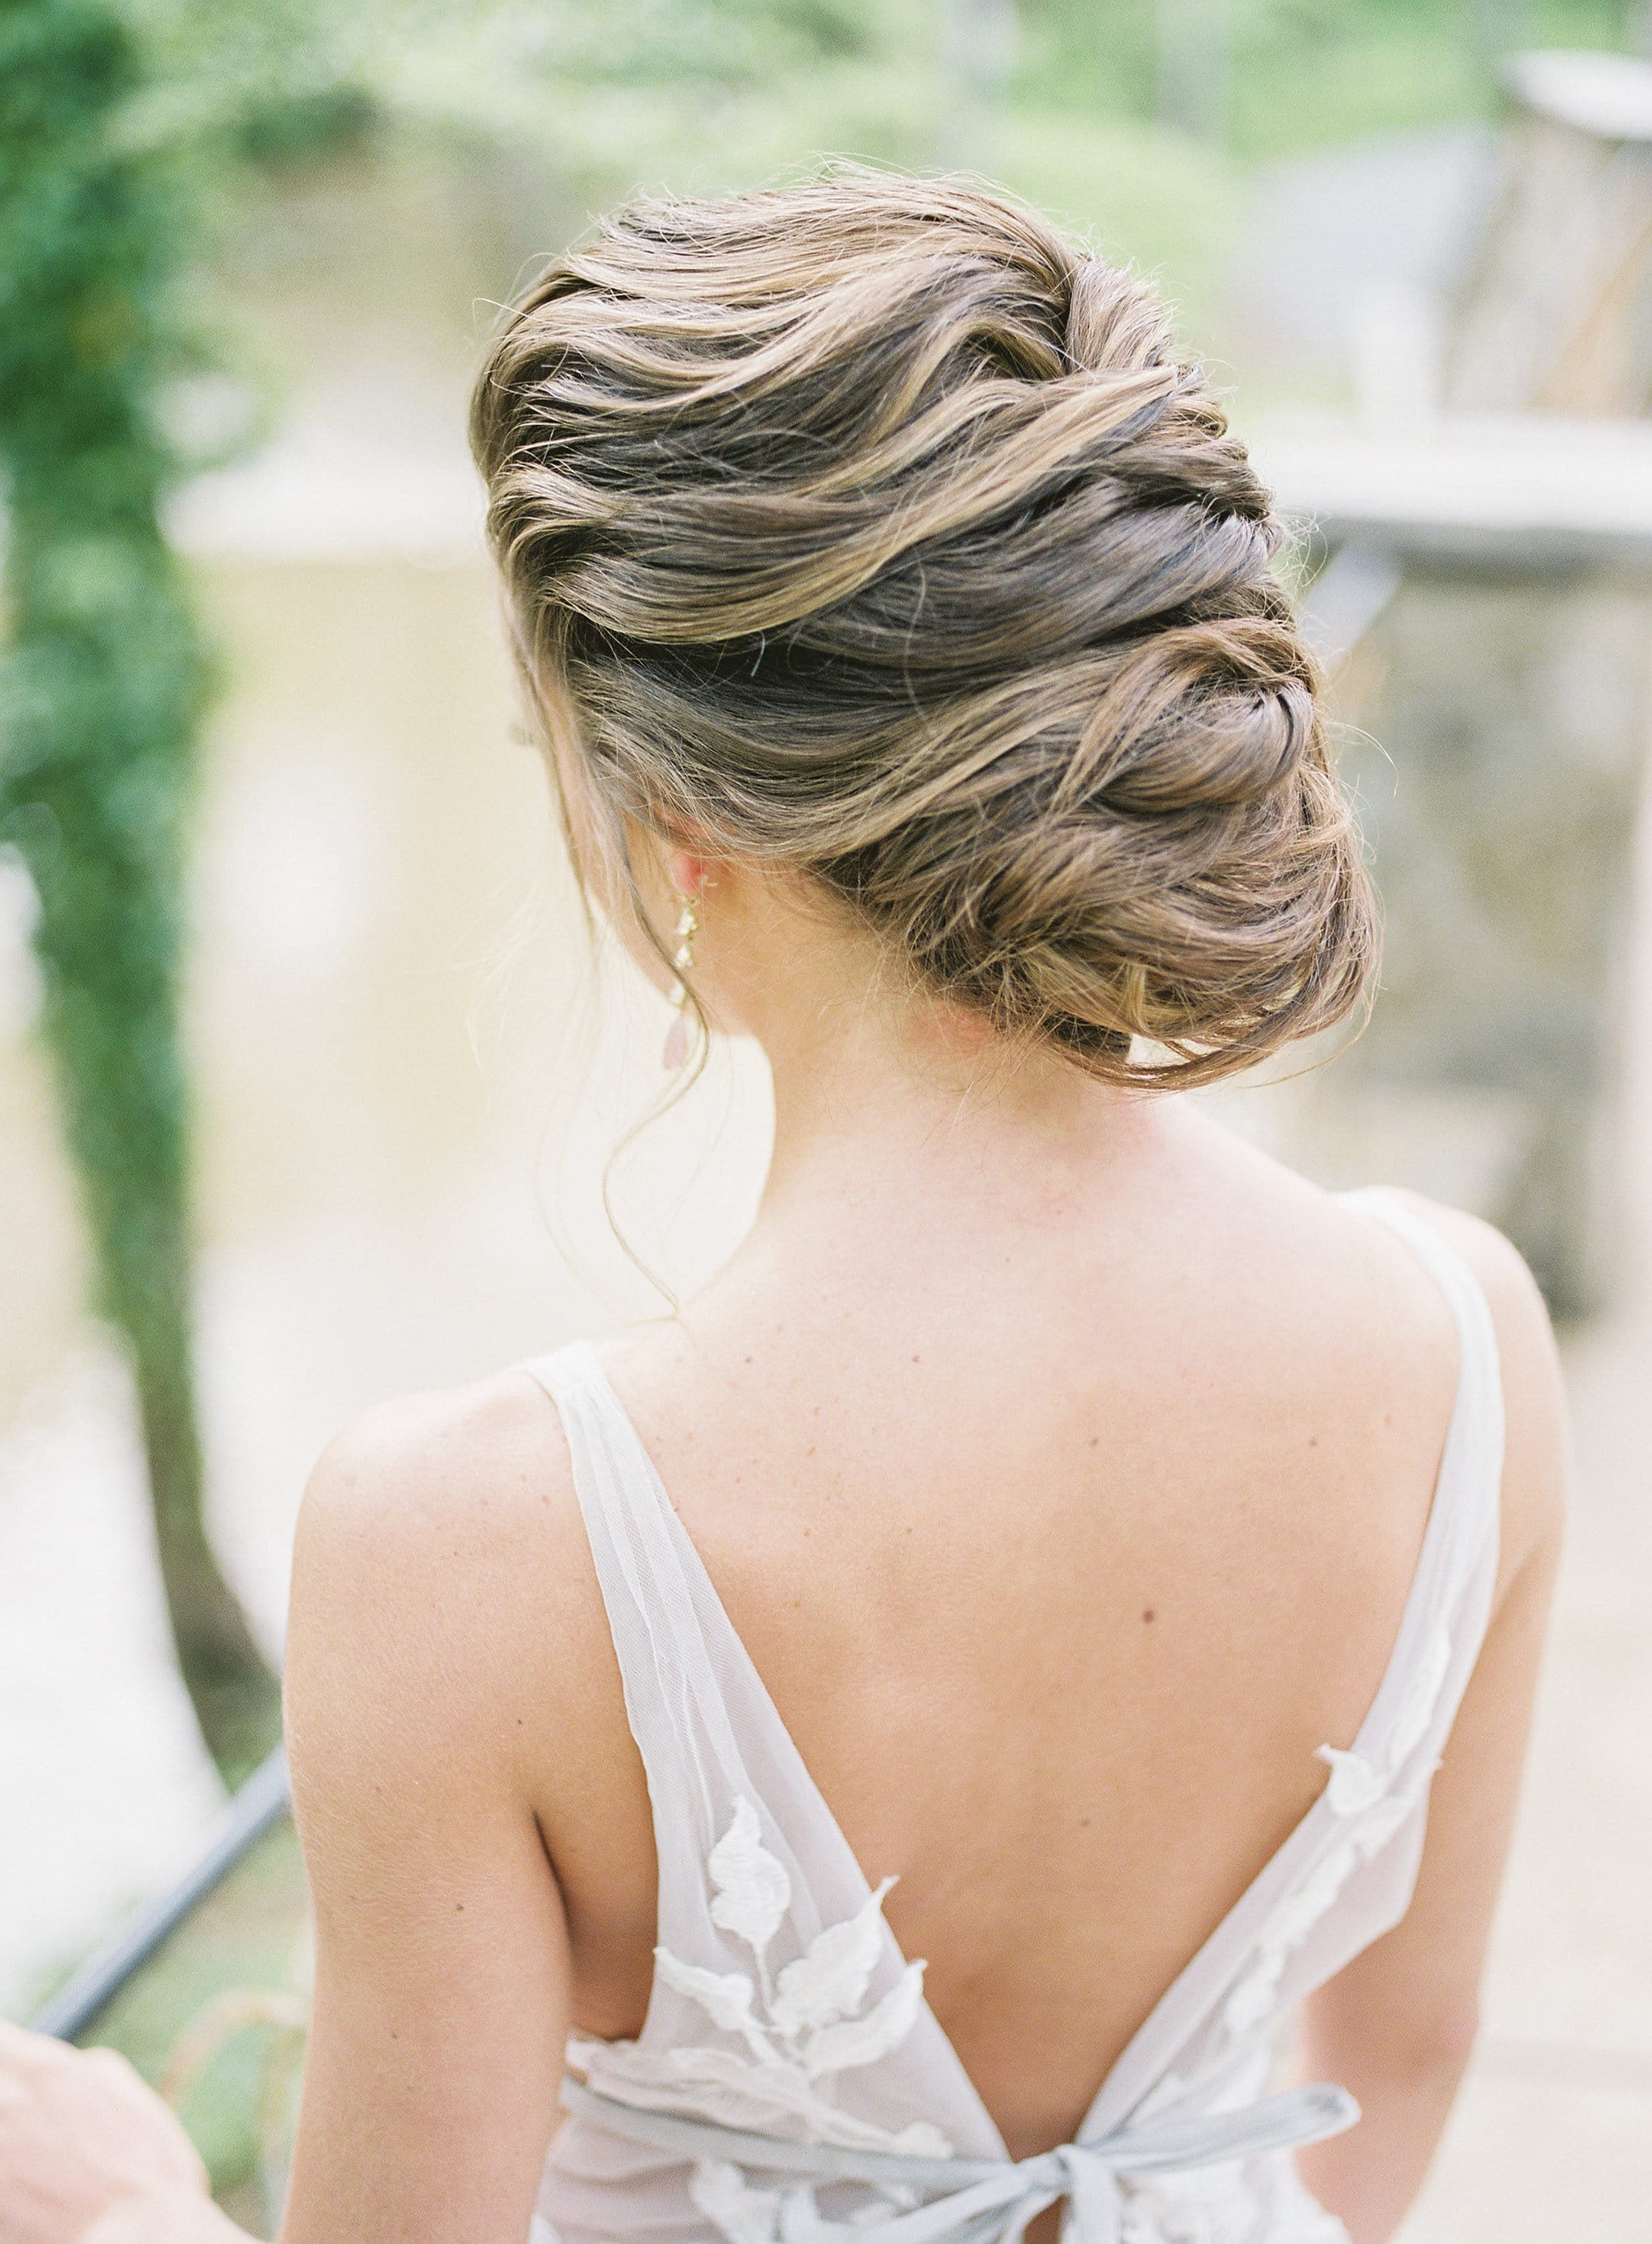 Stunning updo created by Jenny Le for a styled shoot at Tipsy Goat Estate